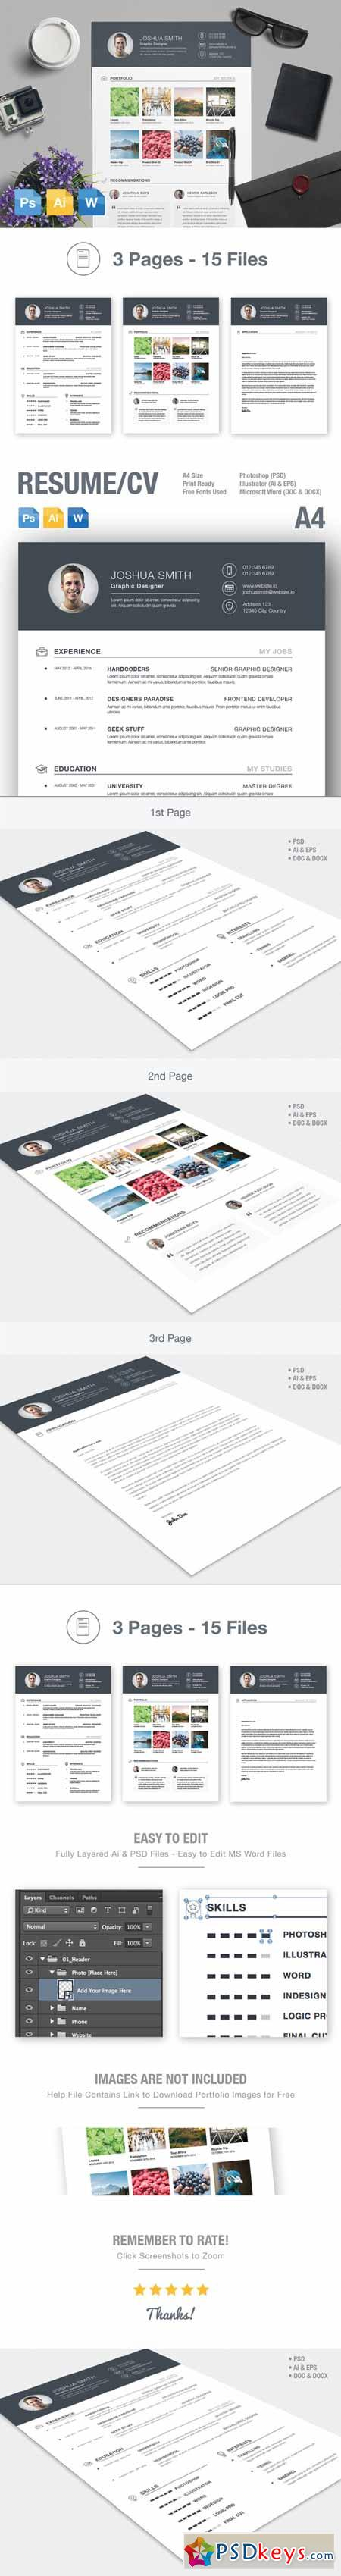 resume  u0026 cv template ai psd docx 217037  u00bb free download